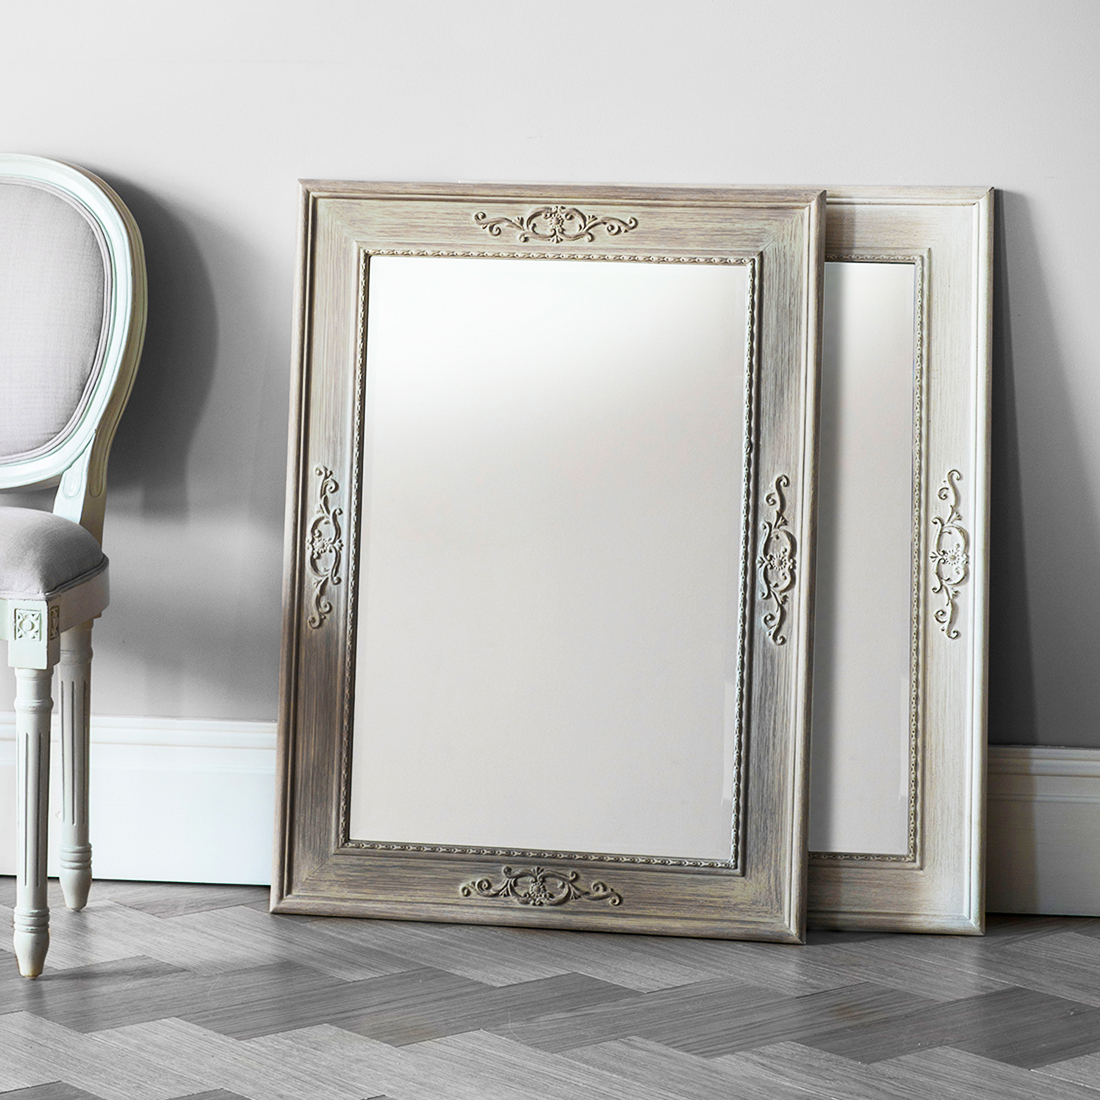 Decorative Rectangular Wooden Wall Mirrors – White Or Limed Oak Inside Fashionable Wooden Wall Mirrors (View 5 of 20)